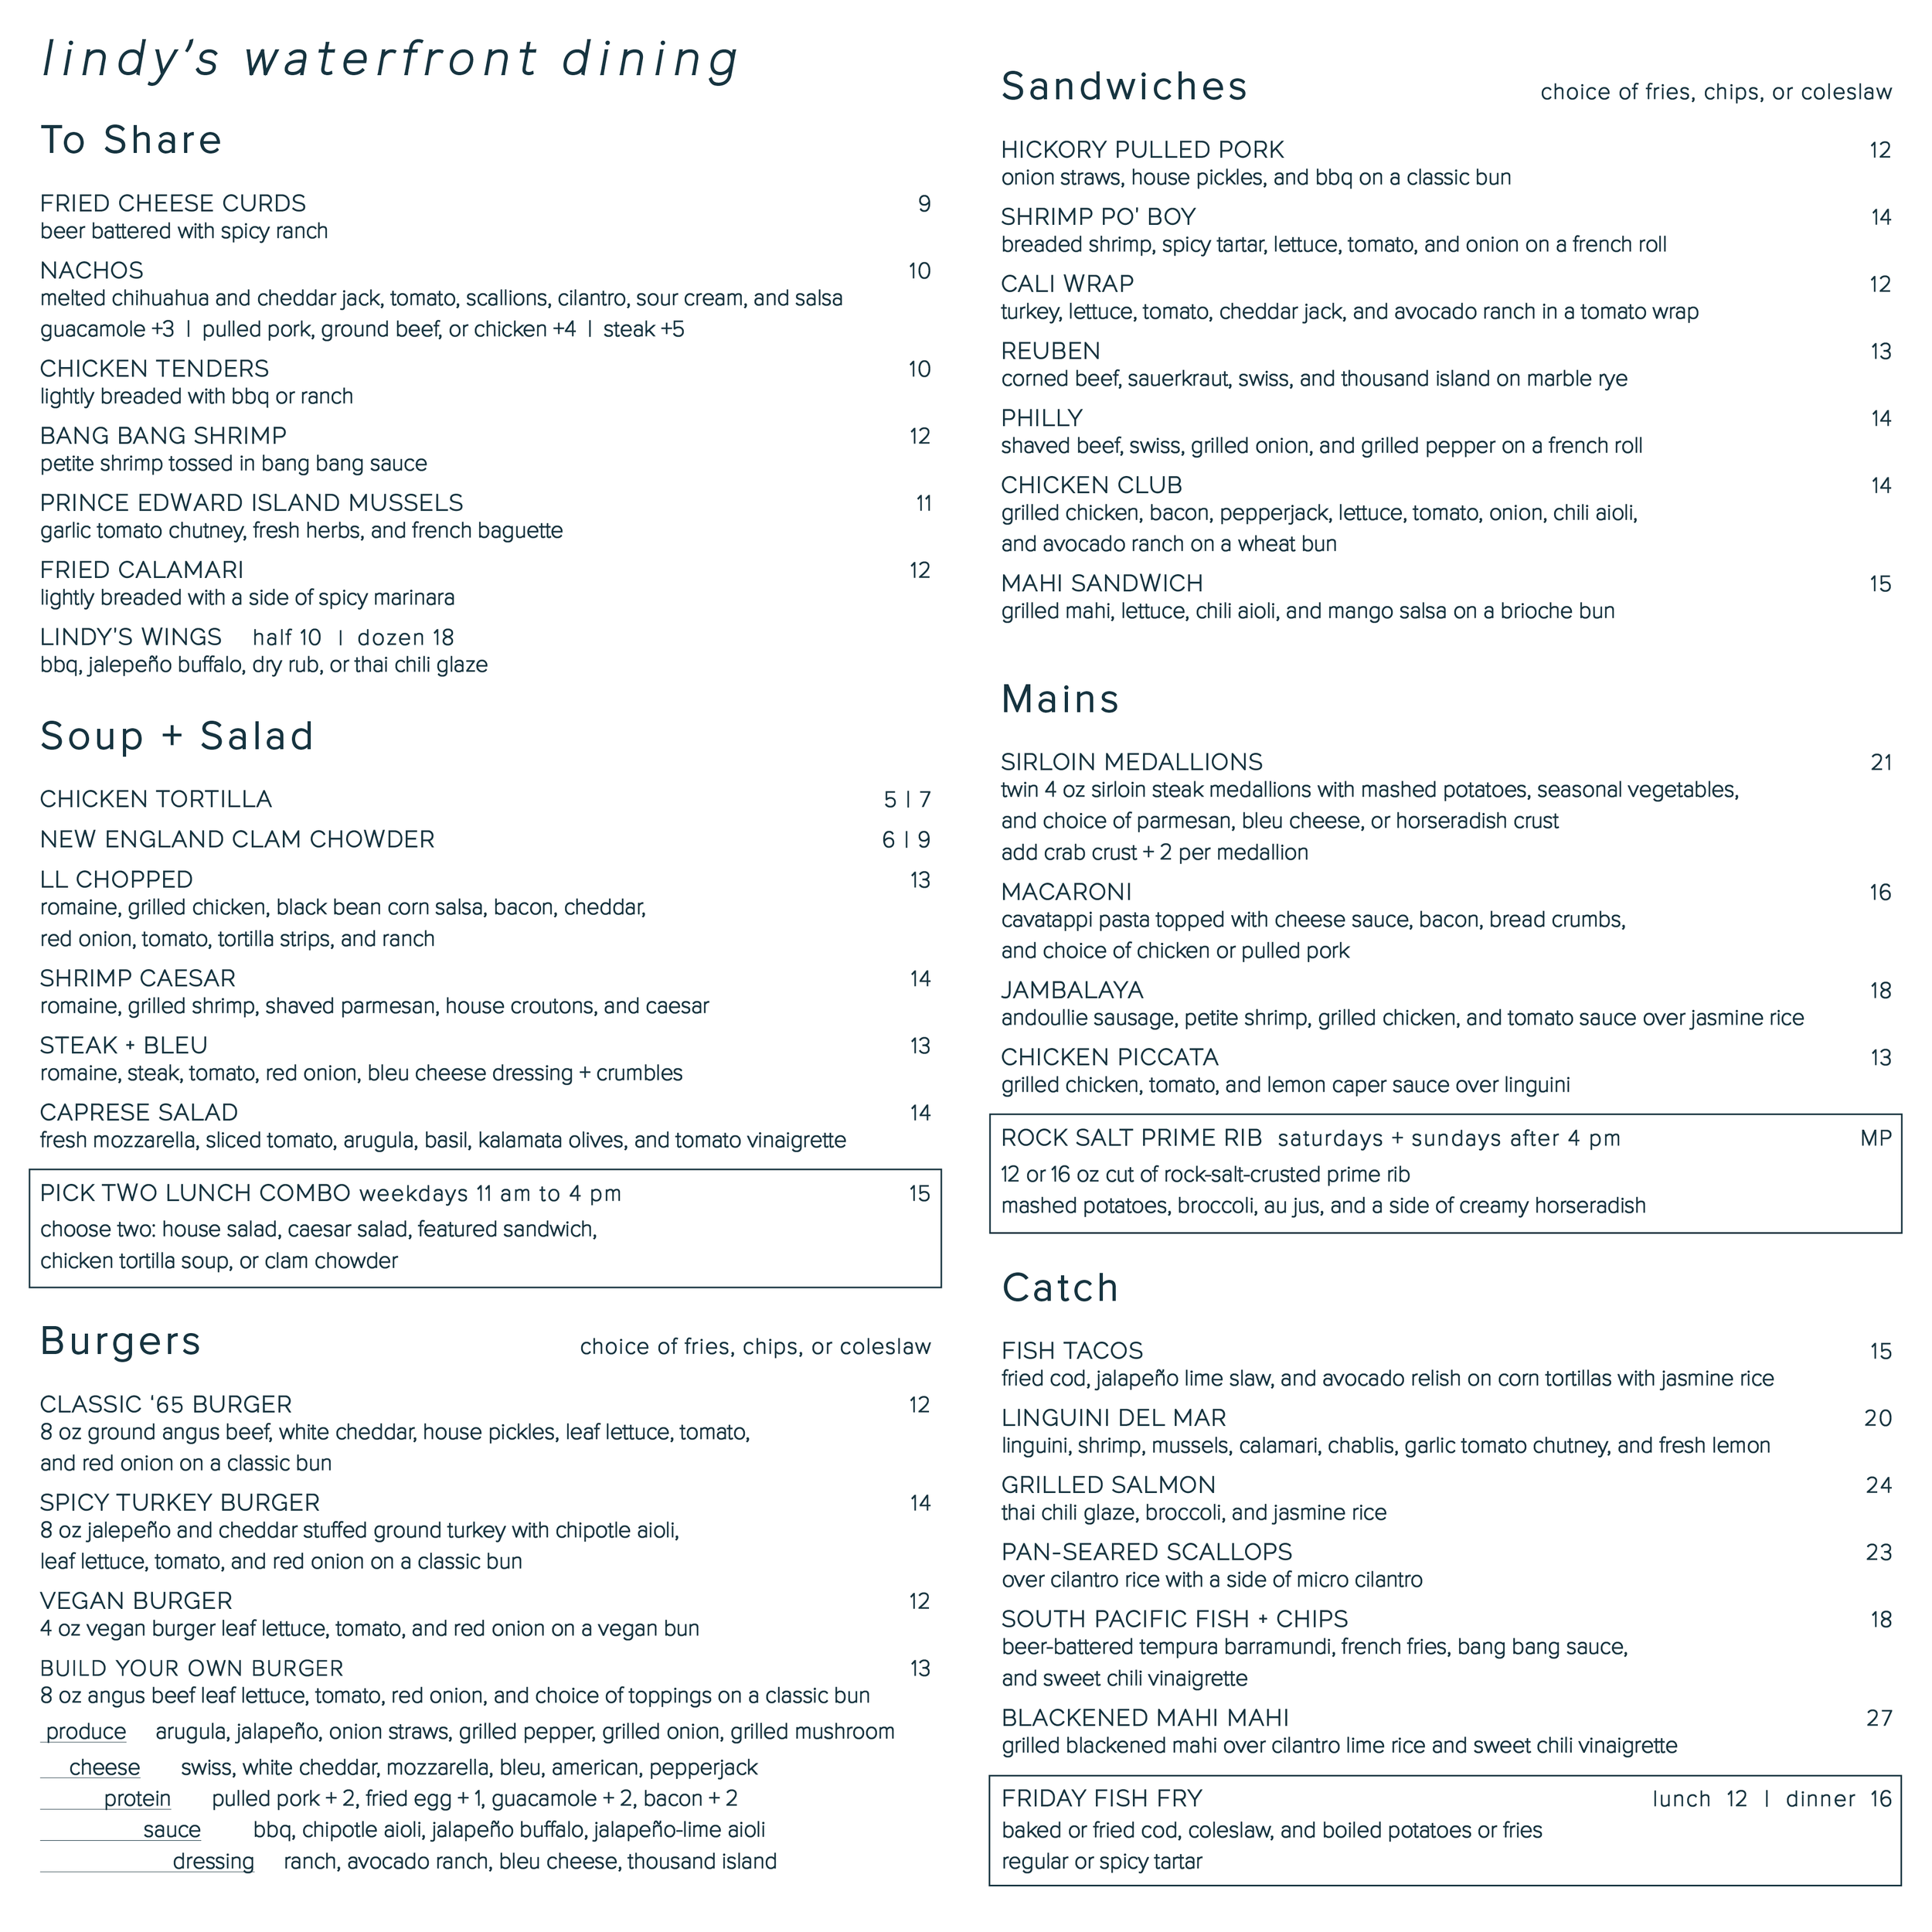 Lindy's Waterfront Menu 1.9.png